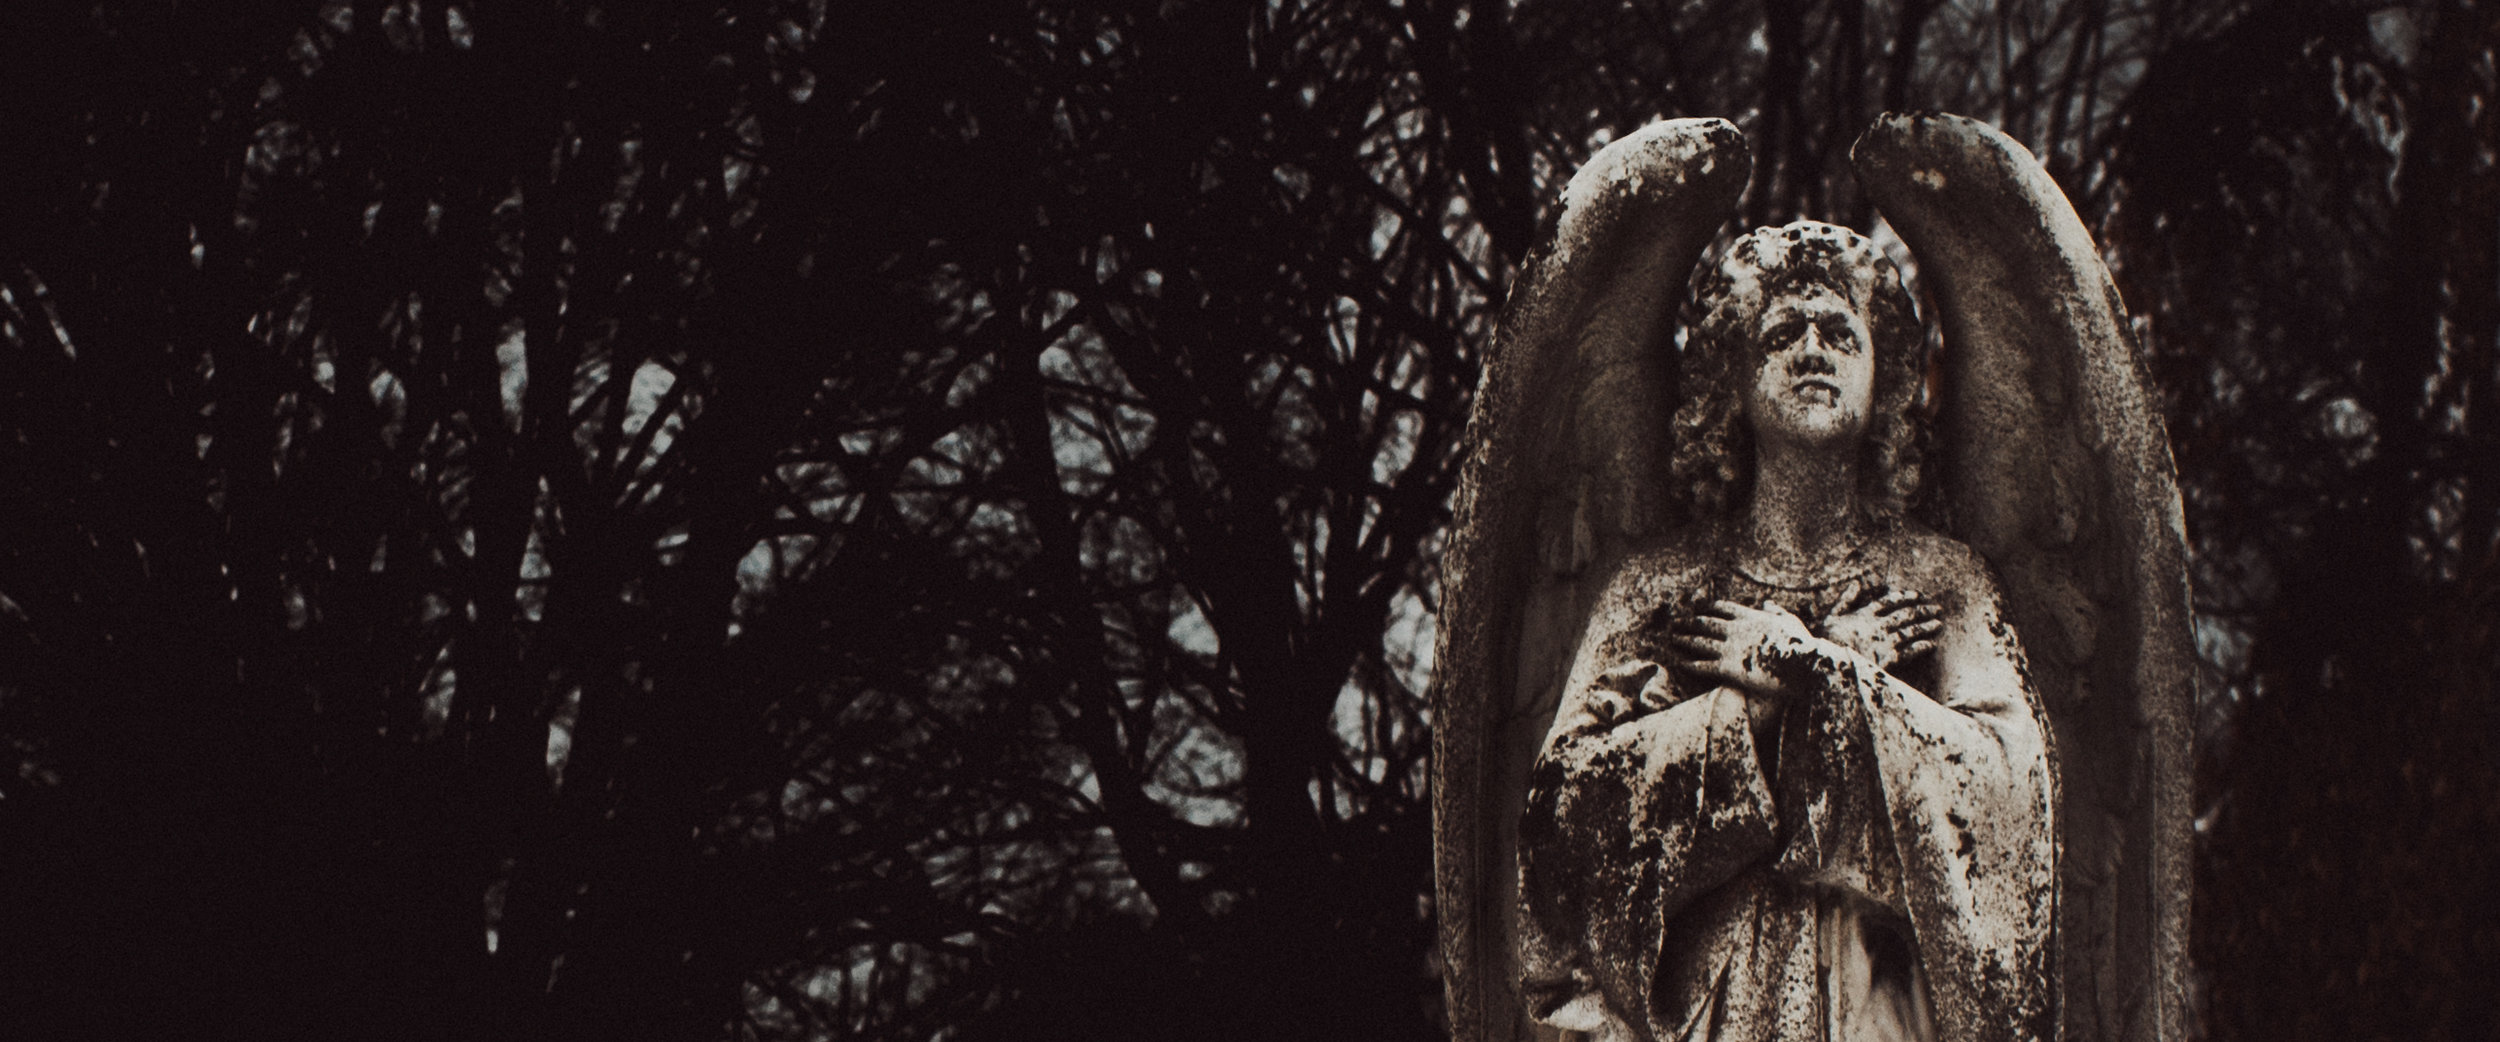 graveyard angel-1.jpg